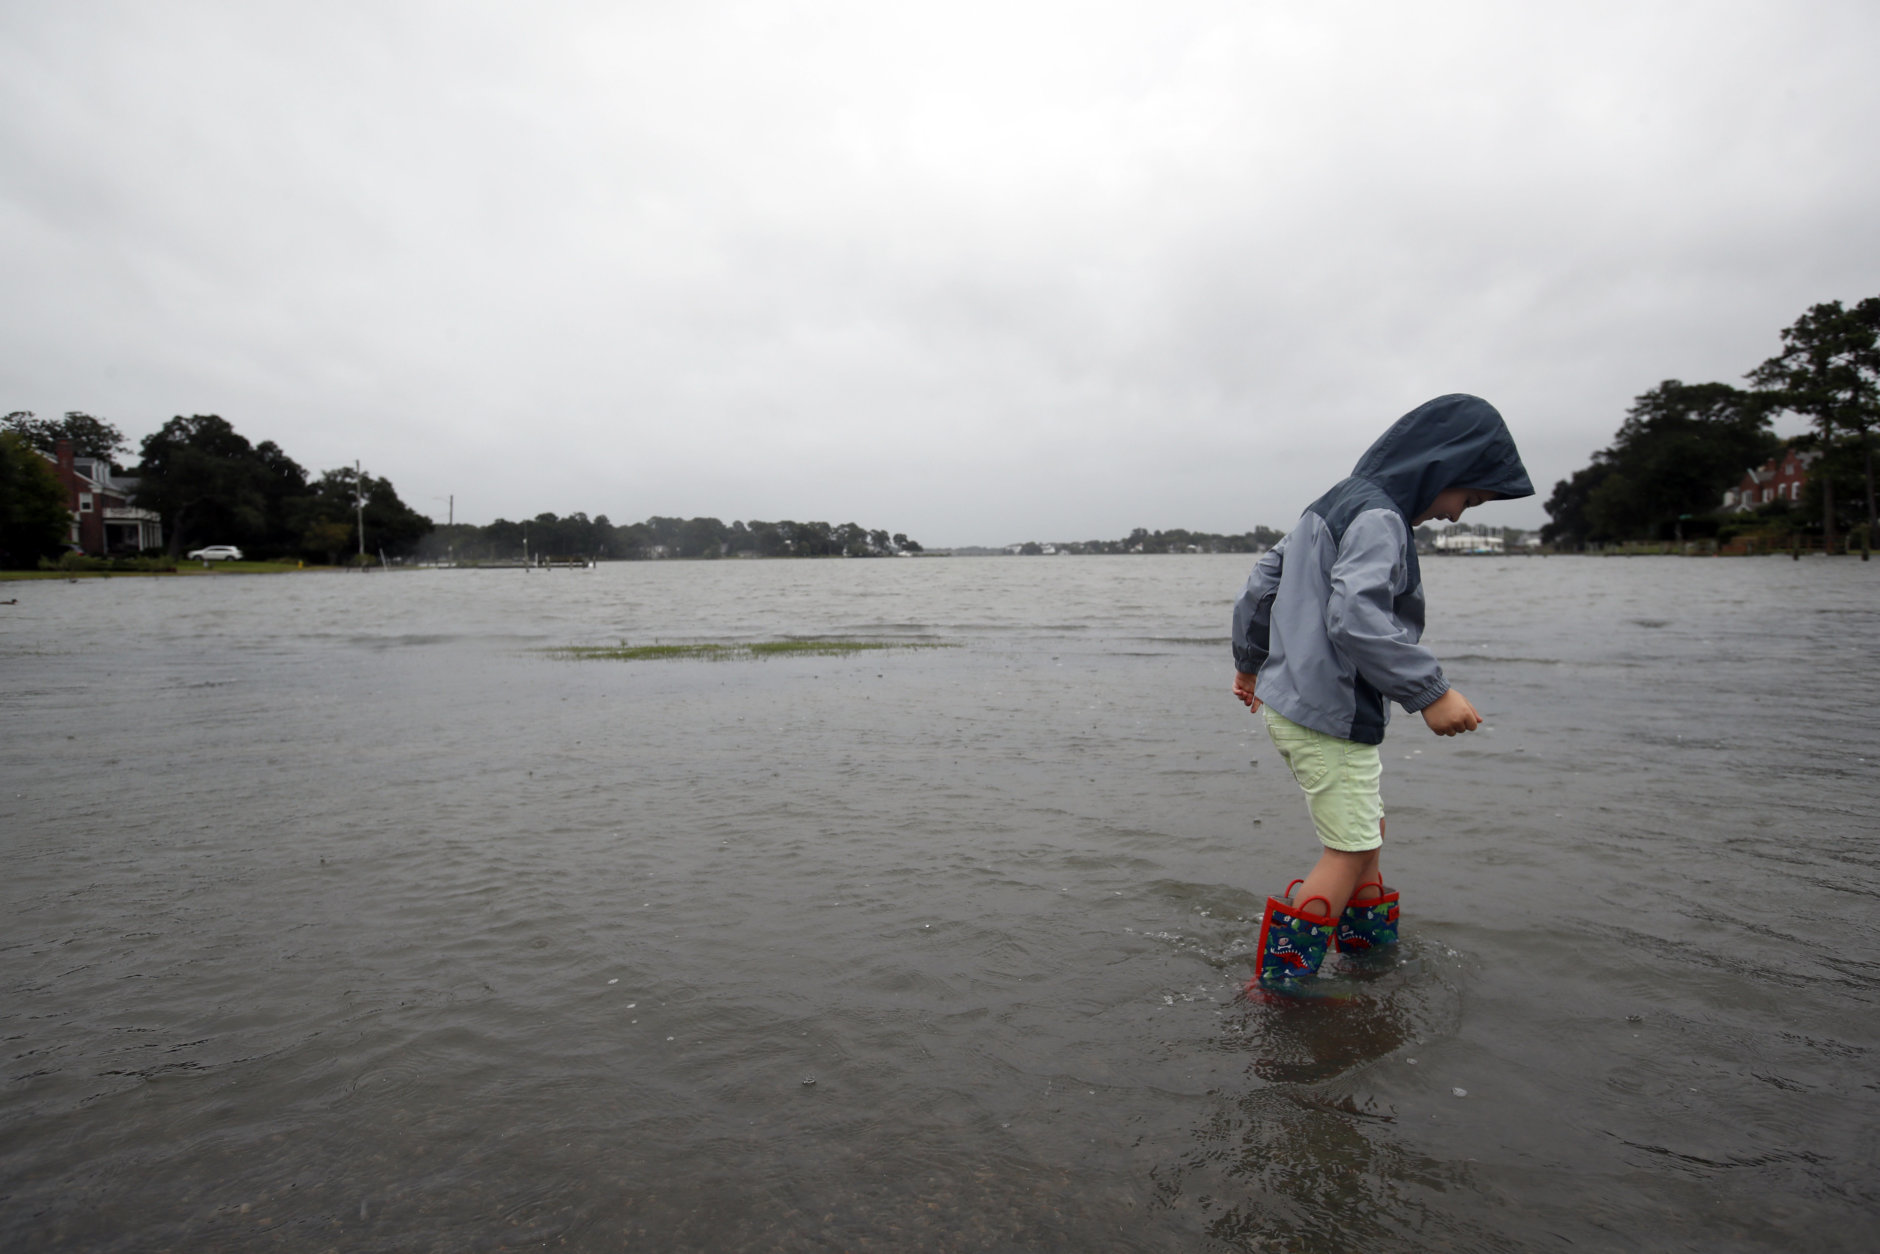 Emmett Marshall, 4, from Norfolk, Va. wades in floodwaters, Friday, Sept. 14, 2018, in the Larchmont area of Norfolk, Va., as the effects of Hurricane Florence are felt. (AP Photo/Alex Brandon)